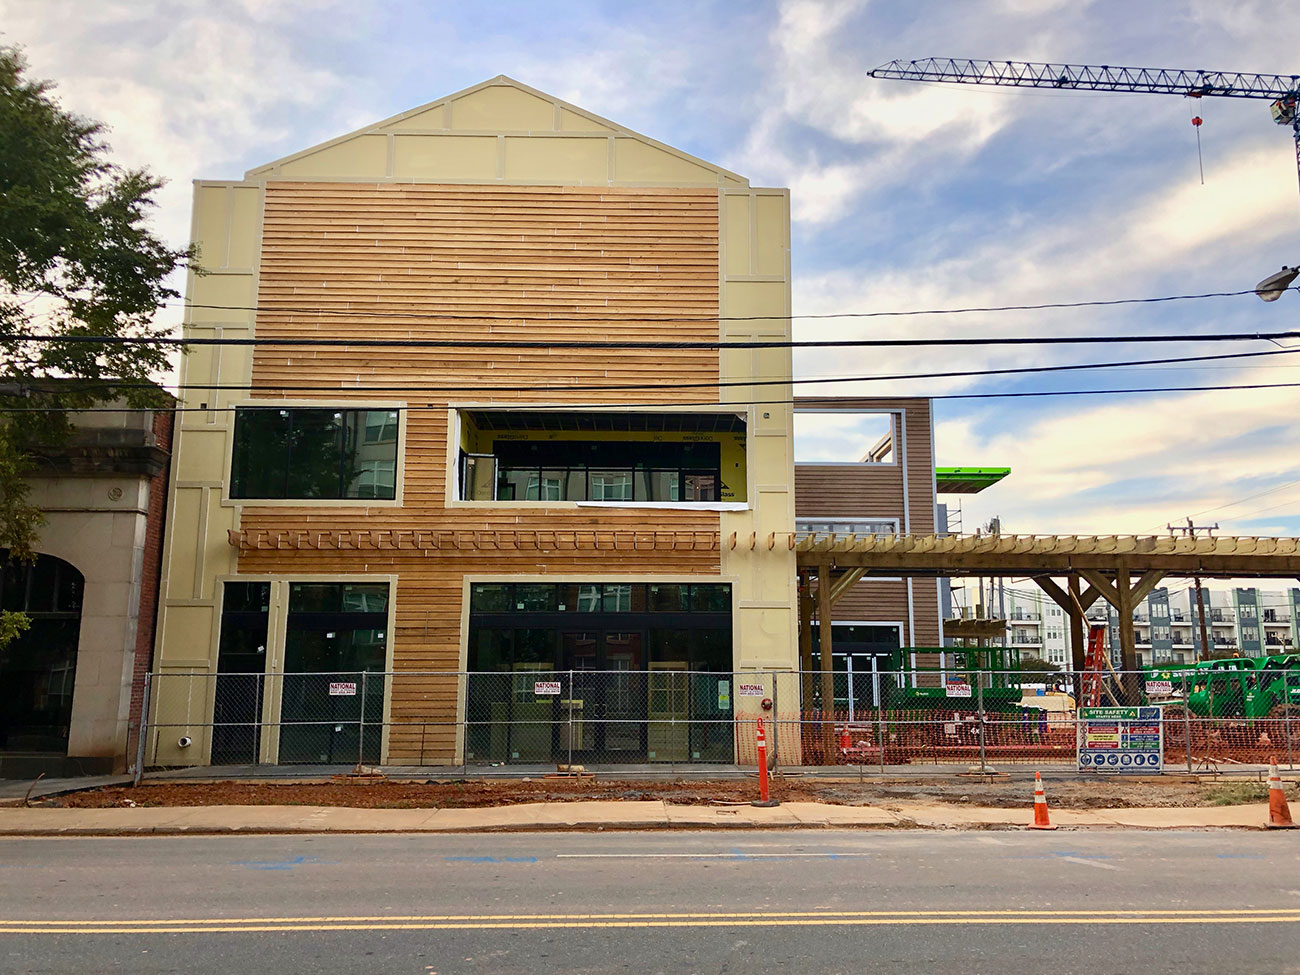 Three-story Charlotte Beer Garden with 375+ taps and rooftop bar coming soon to South End